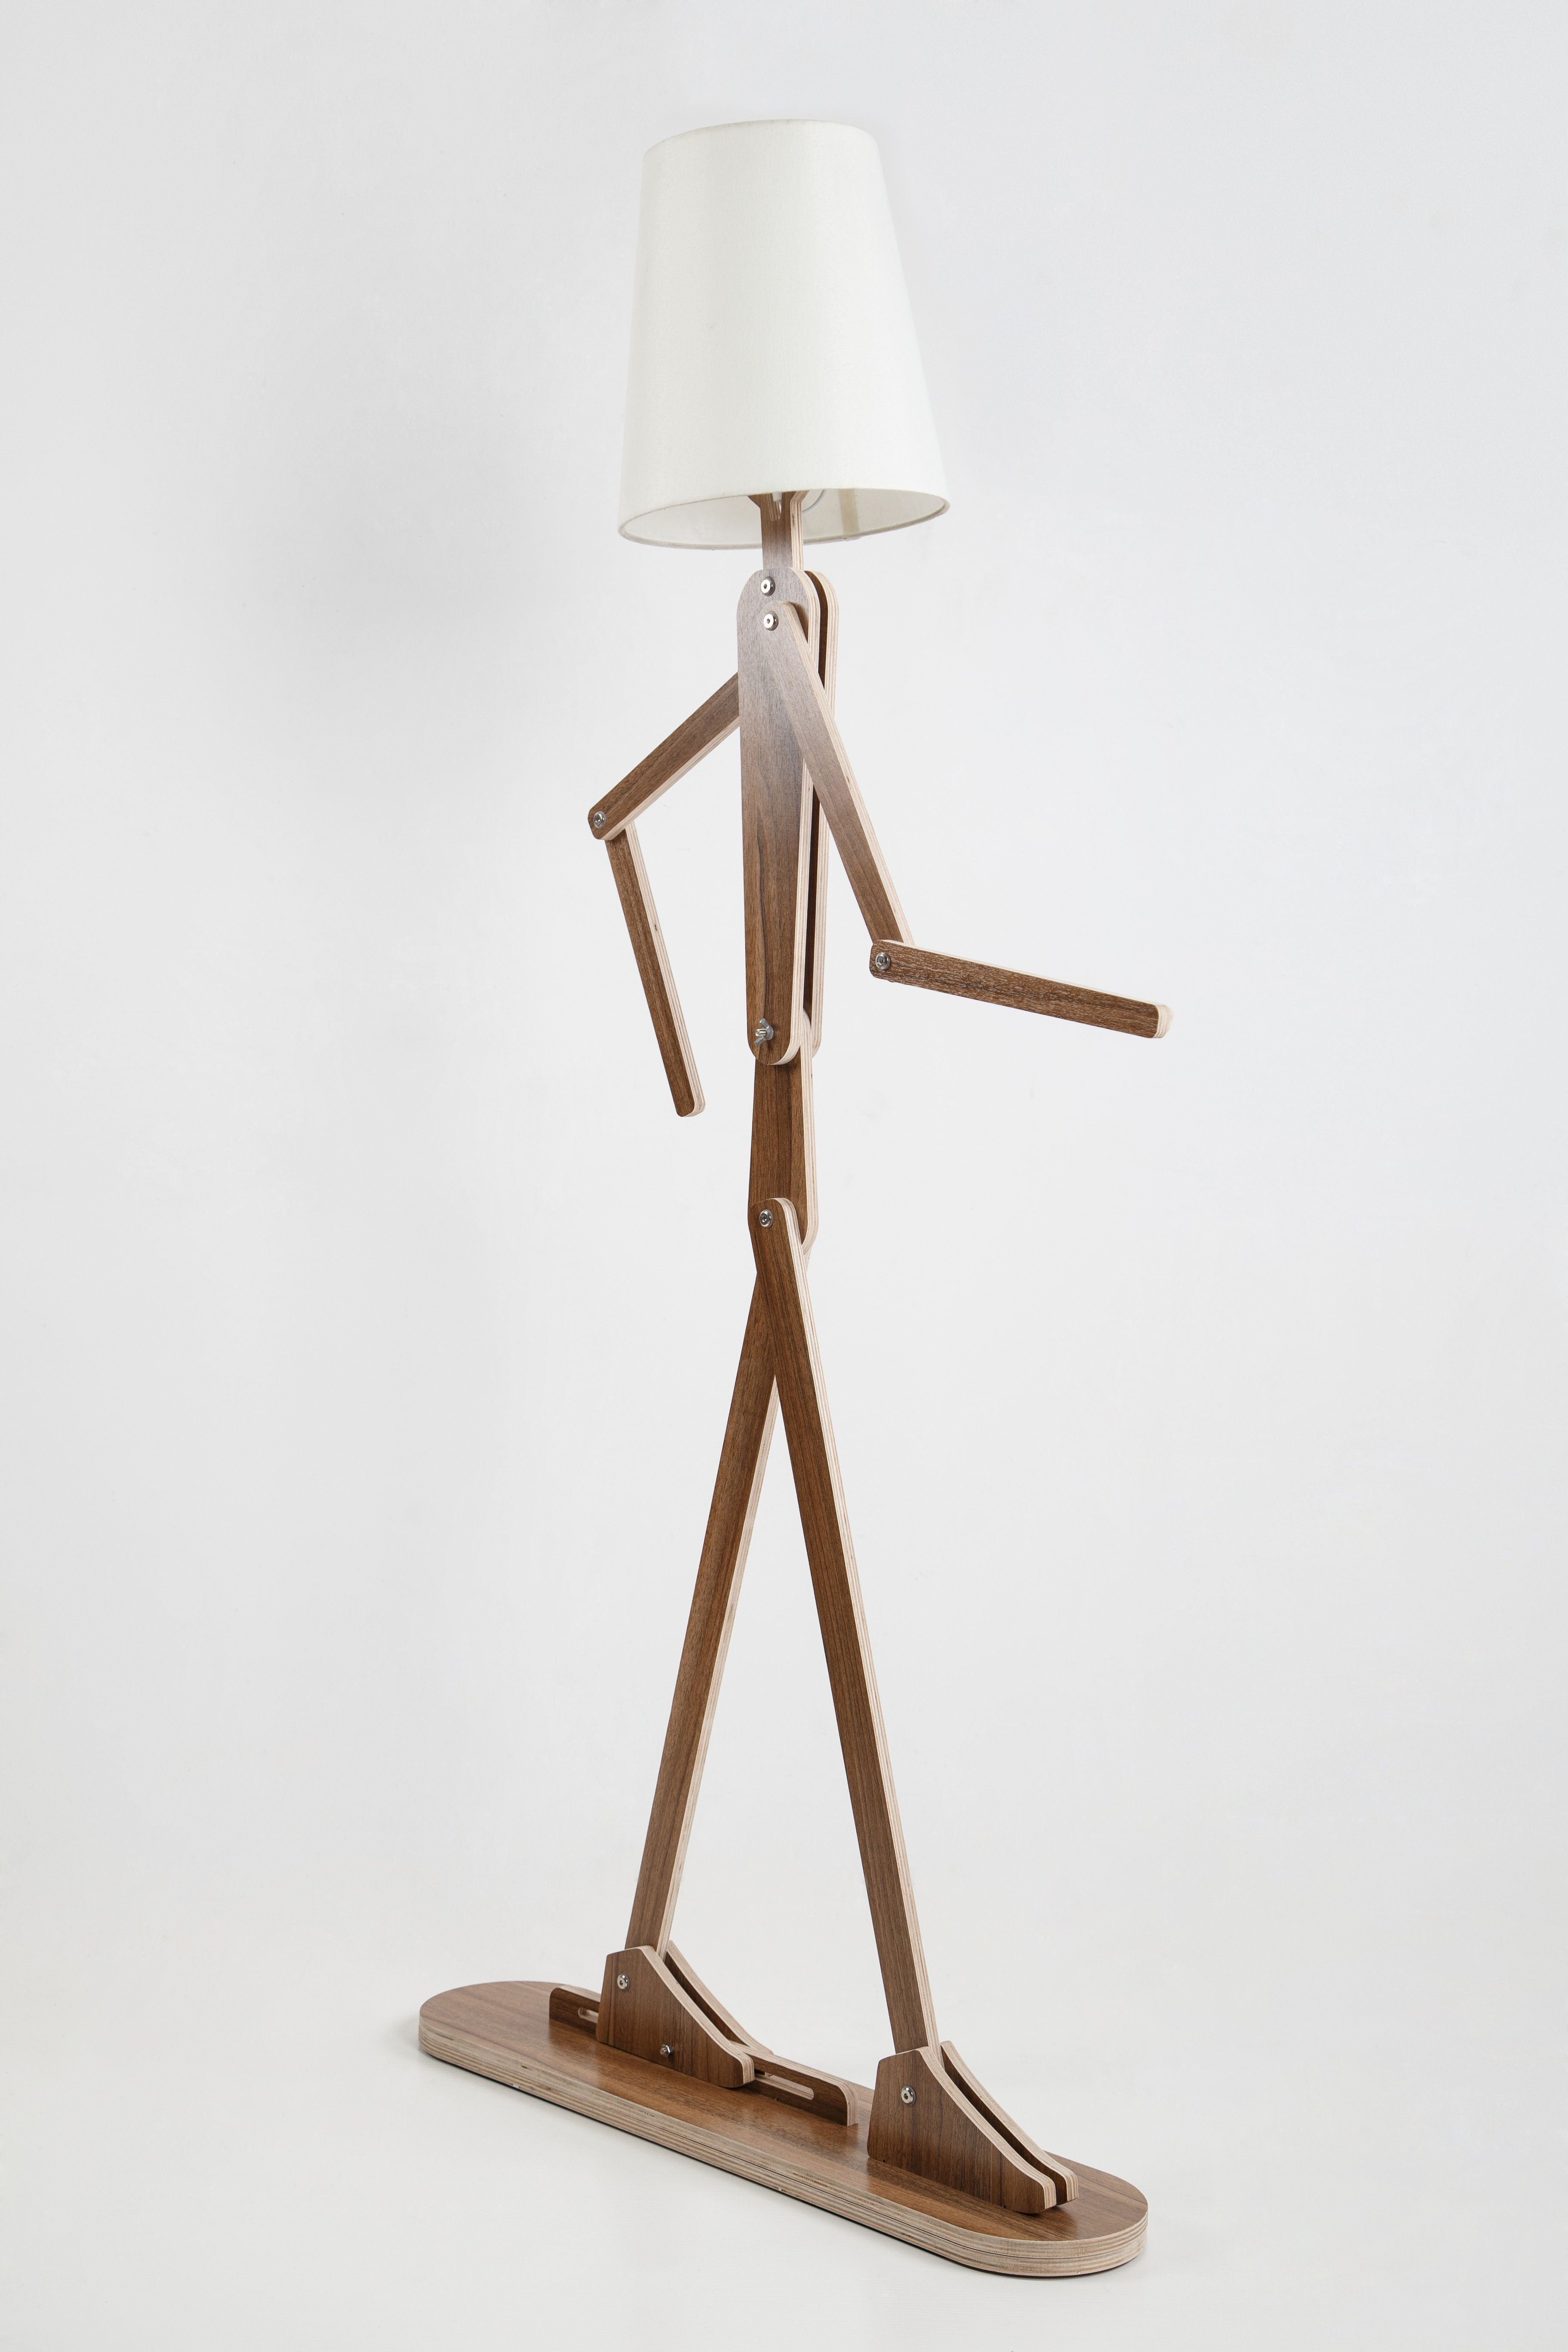 DIY Fancy Human Shape Standard Lamp With Flexible Arm  Rustic Wooden Home  Lighting With Four